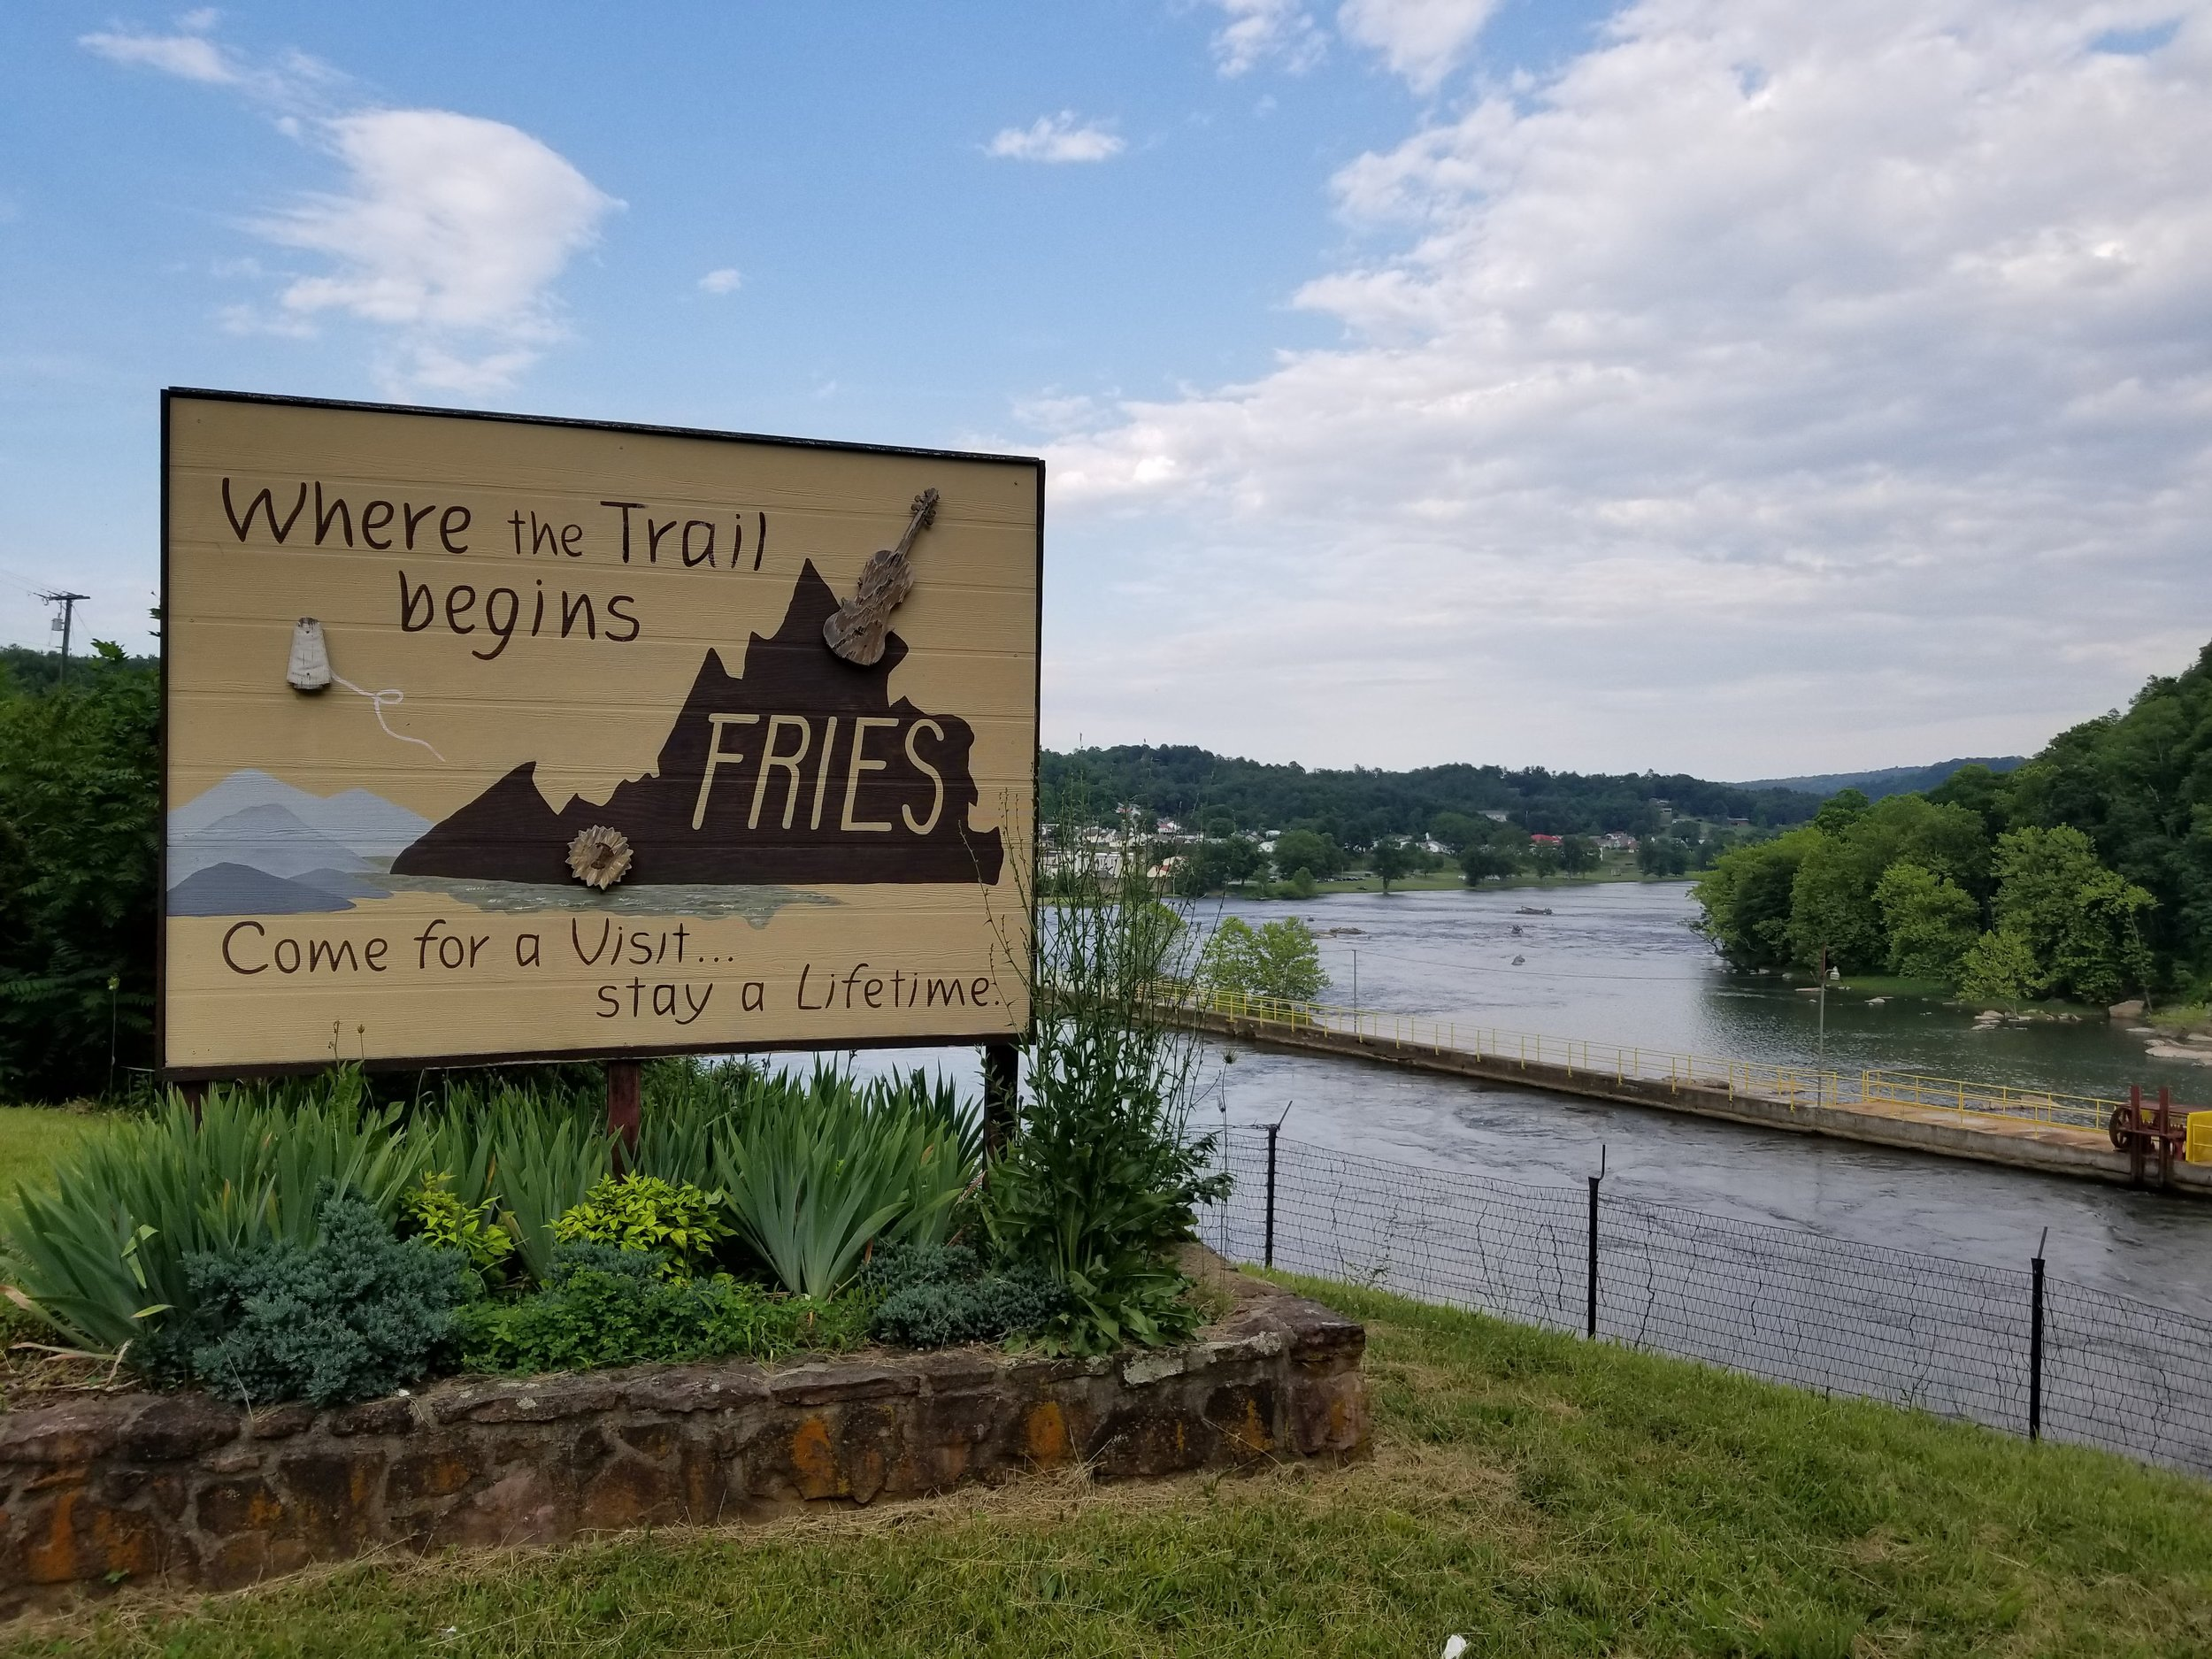 Fries, Virginia was built as a company town by textile magnate, Col. Francis Henry Fries in the early 1900's.